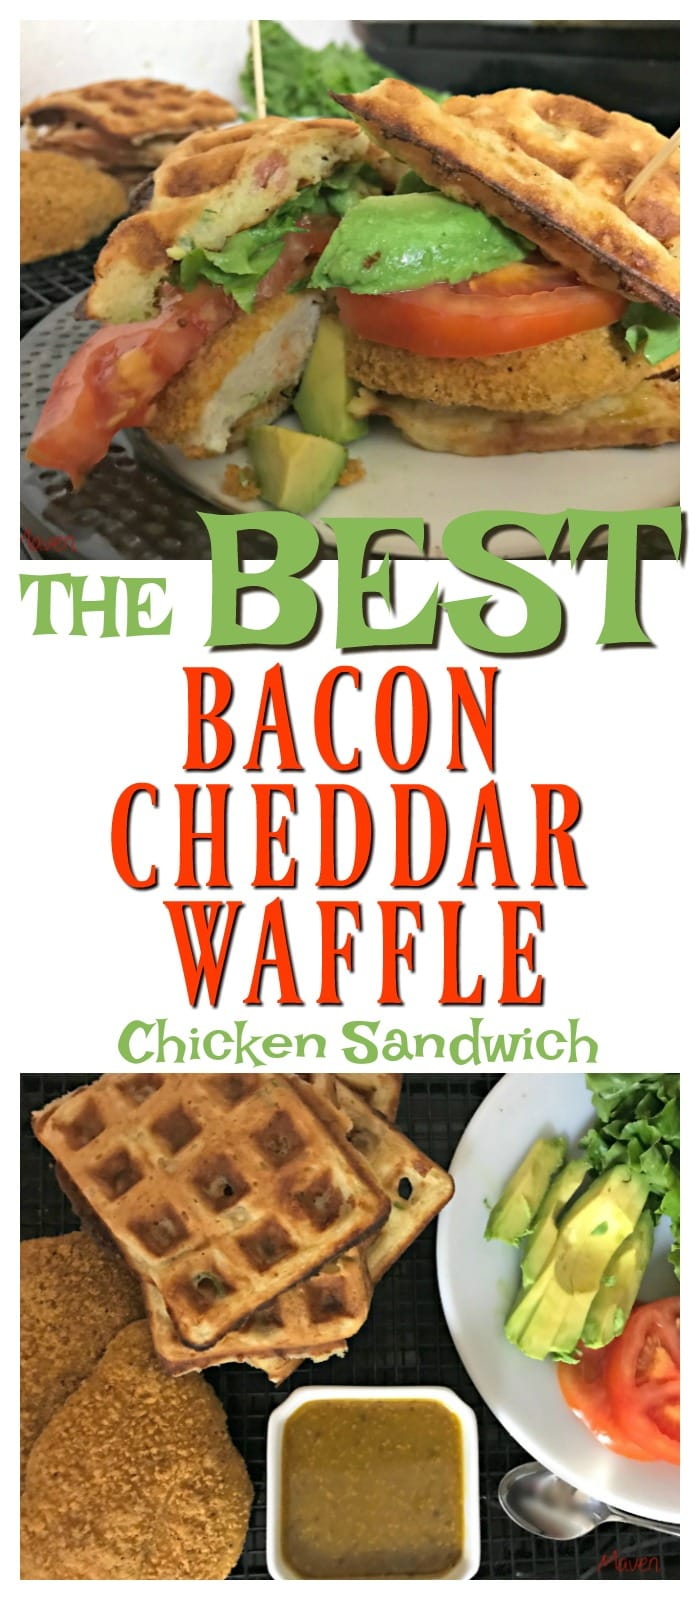 Looking for the BESTY Bacon Cheddar waffle chicken sandwich!